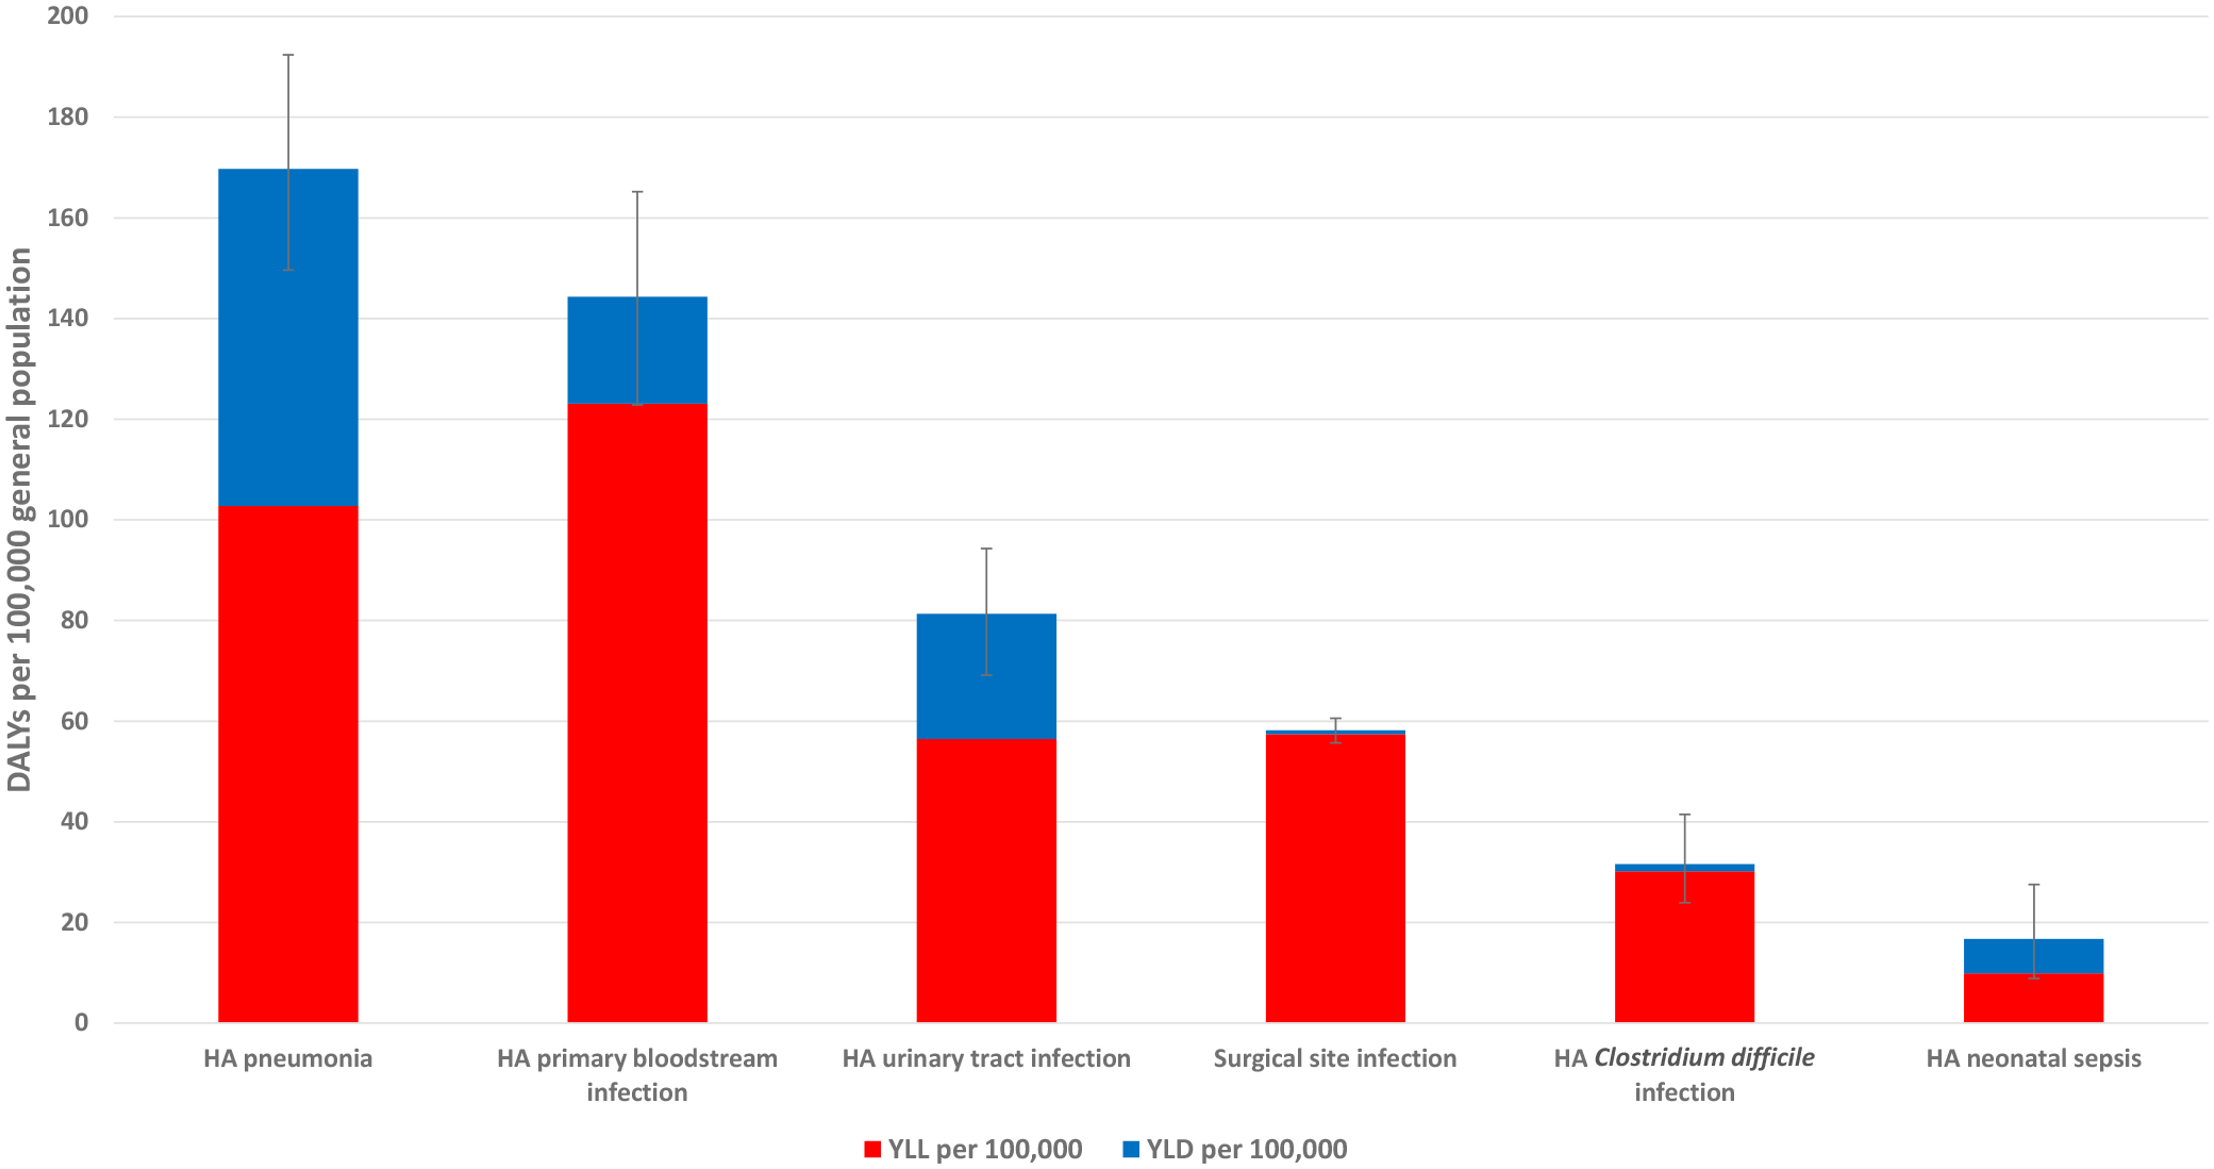 Estimated annual burden of six healthcare-associated infections in DALYs per 100,000 population (median and 95% uncertainty interval), split between YLLs and YLDs, EU/EEA, 2011–2012 (time discounting was not applied).